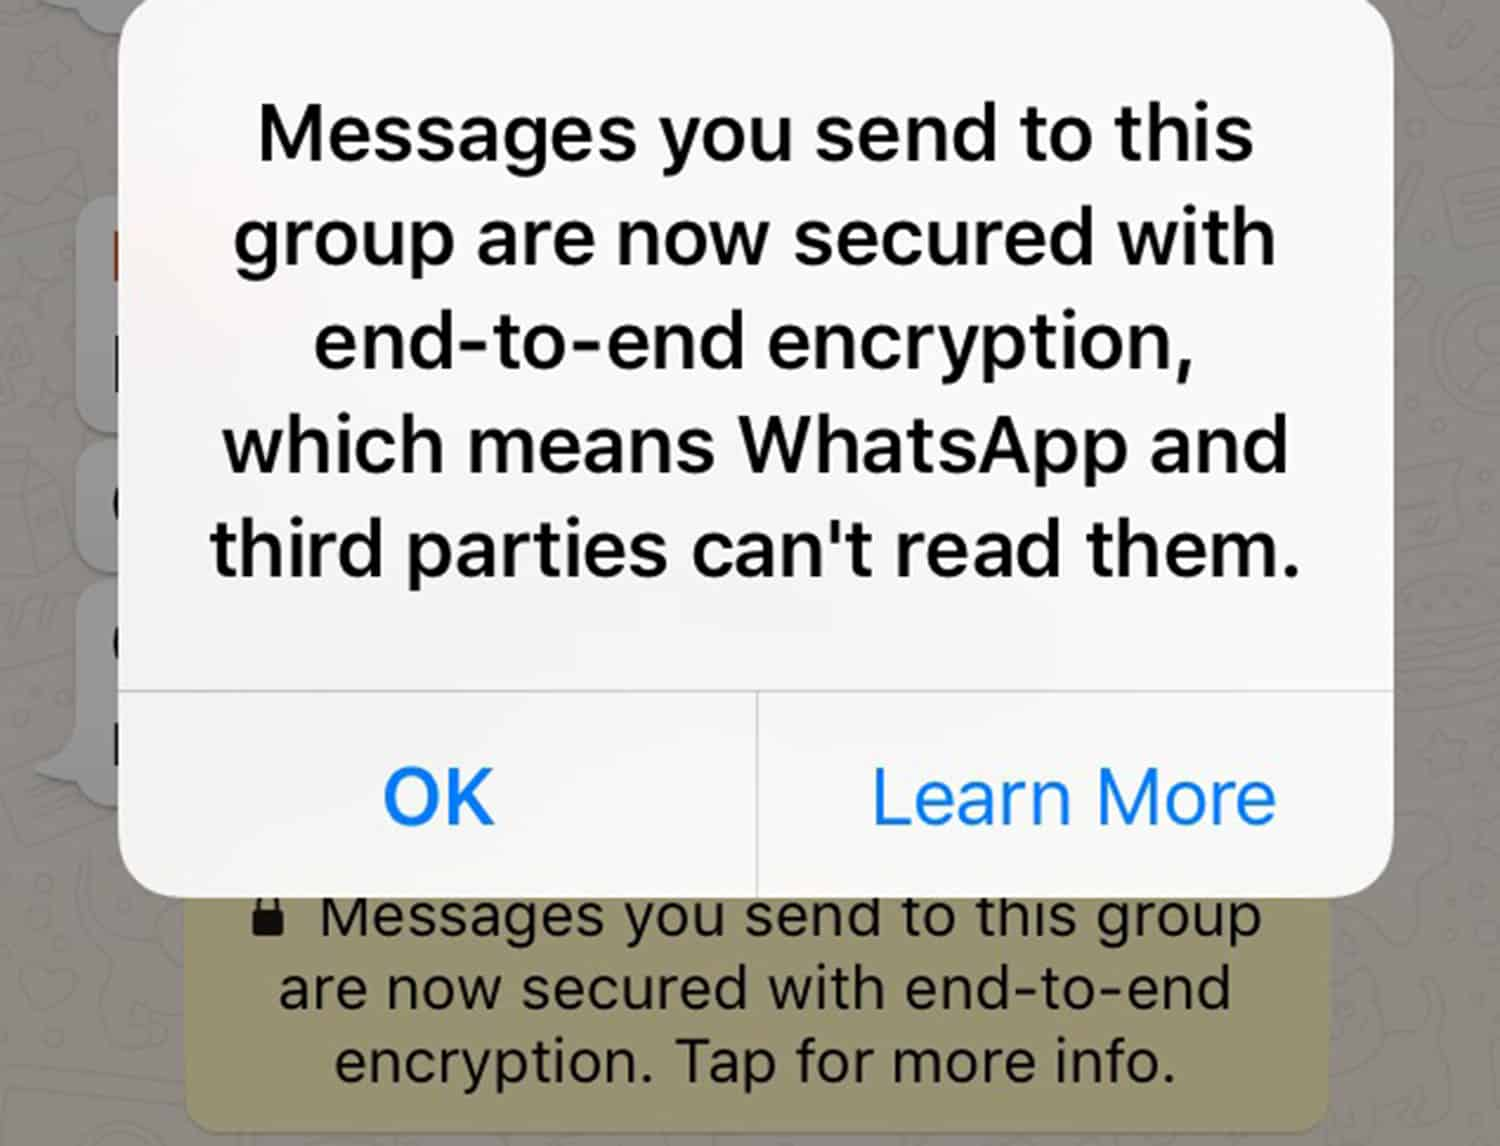 whatsapp-group-messages